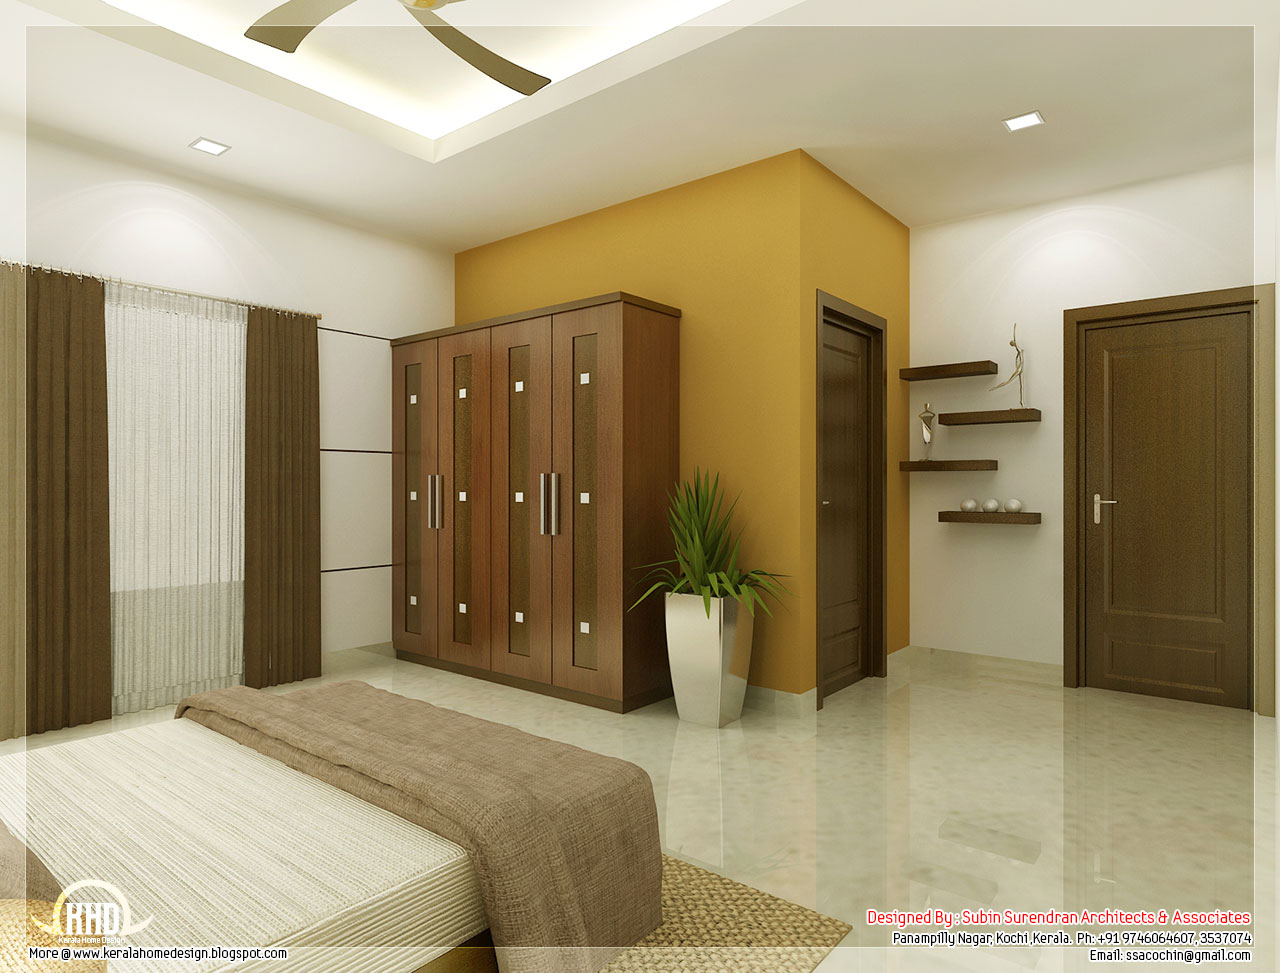 Beautiful bedroom interior designs kerala home design and floor plans - Design of bedroom ...